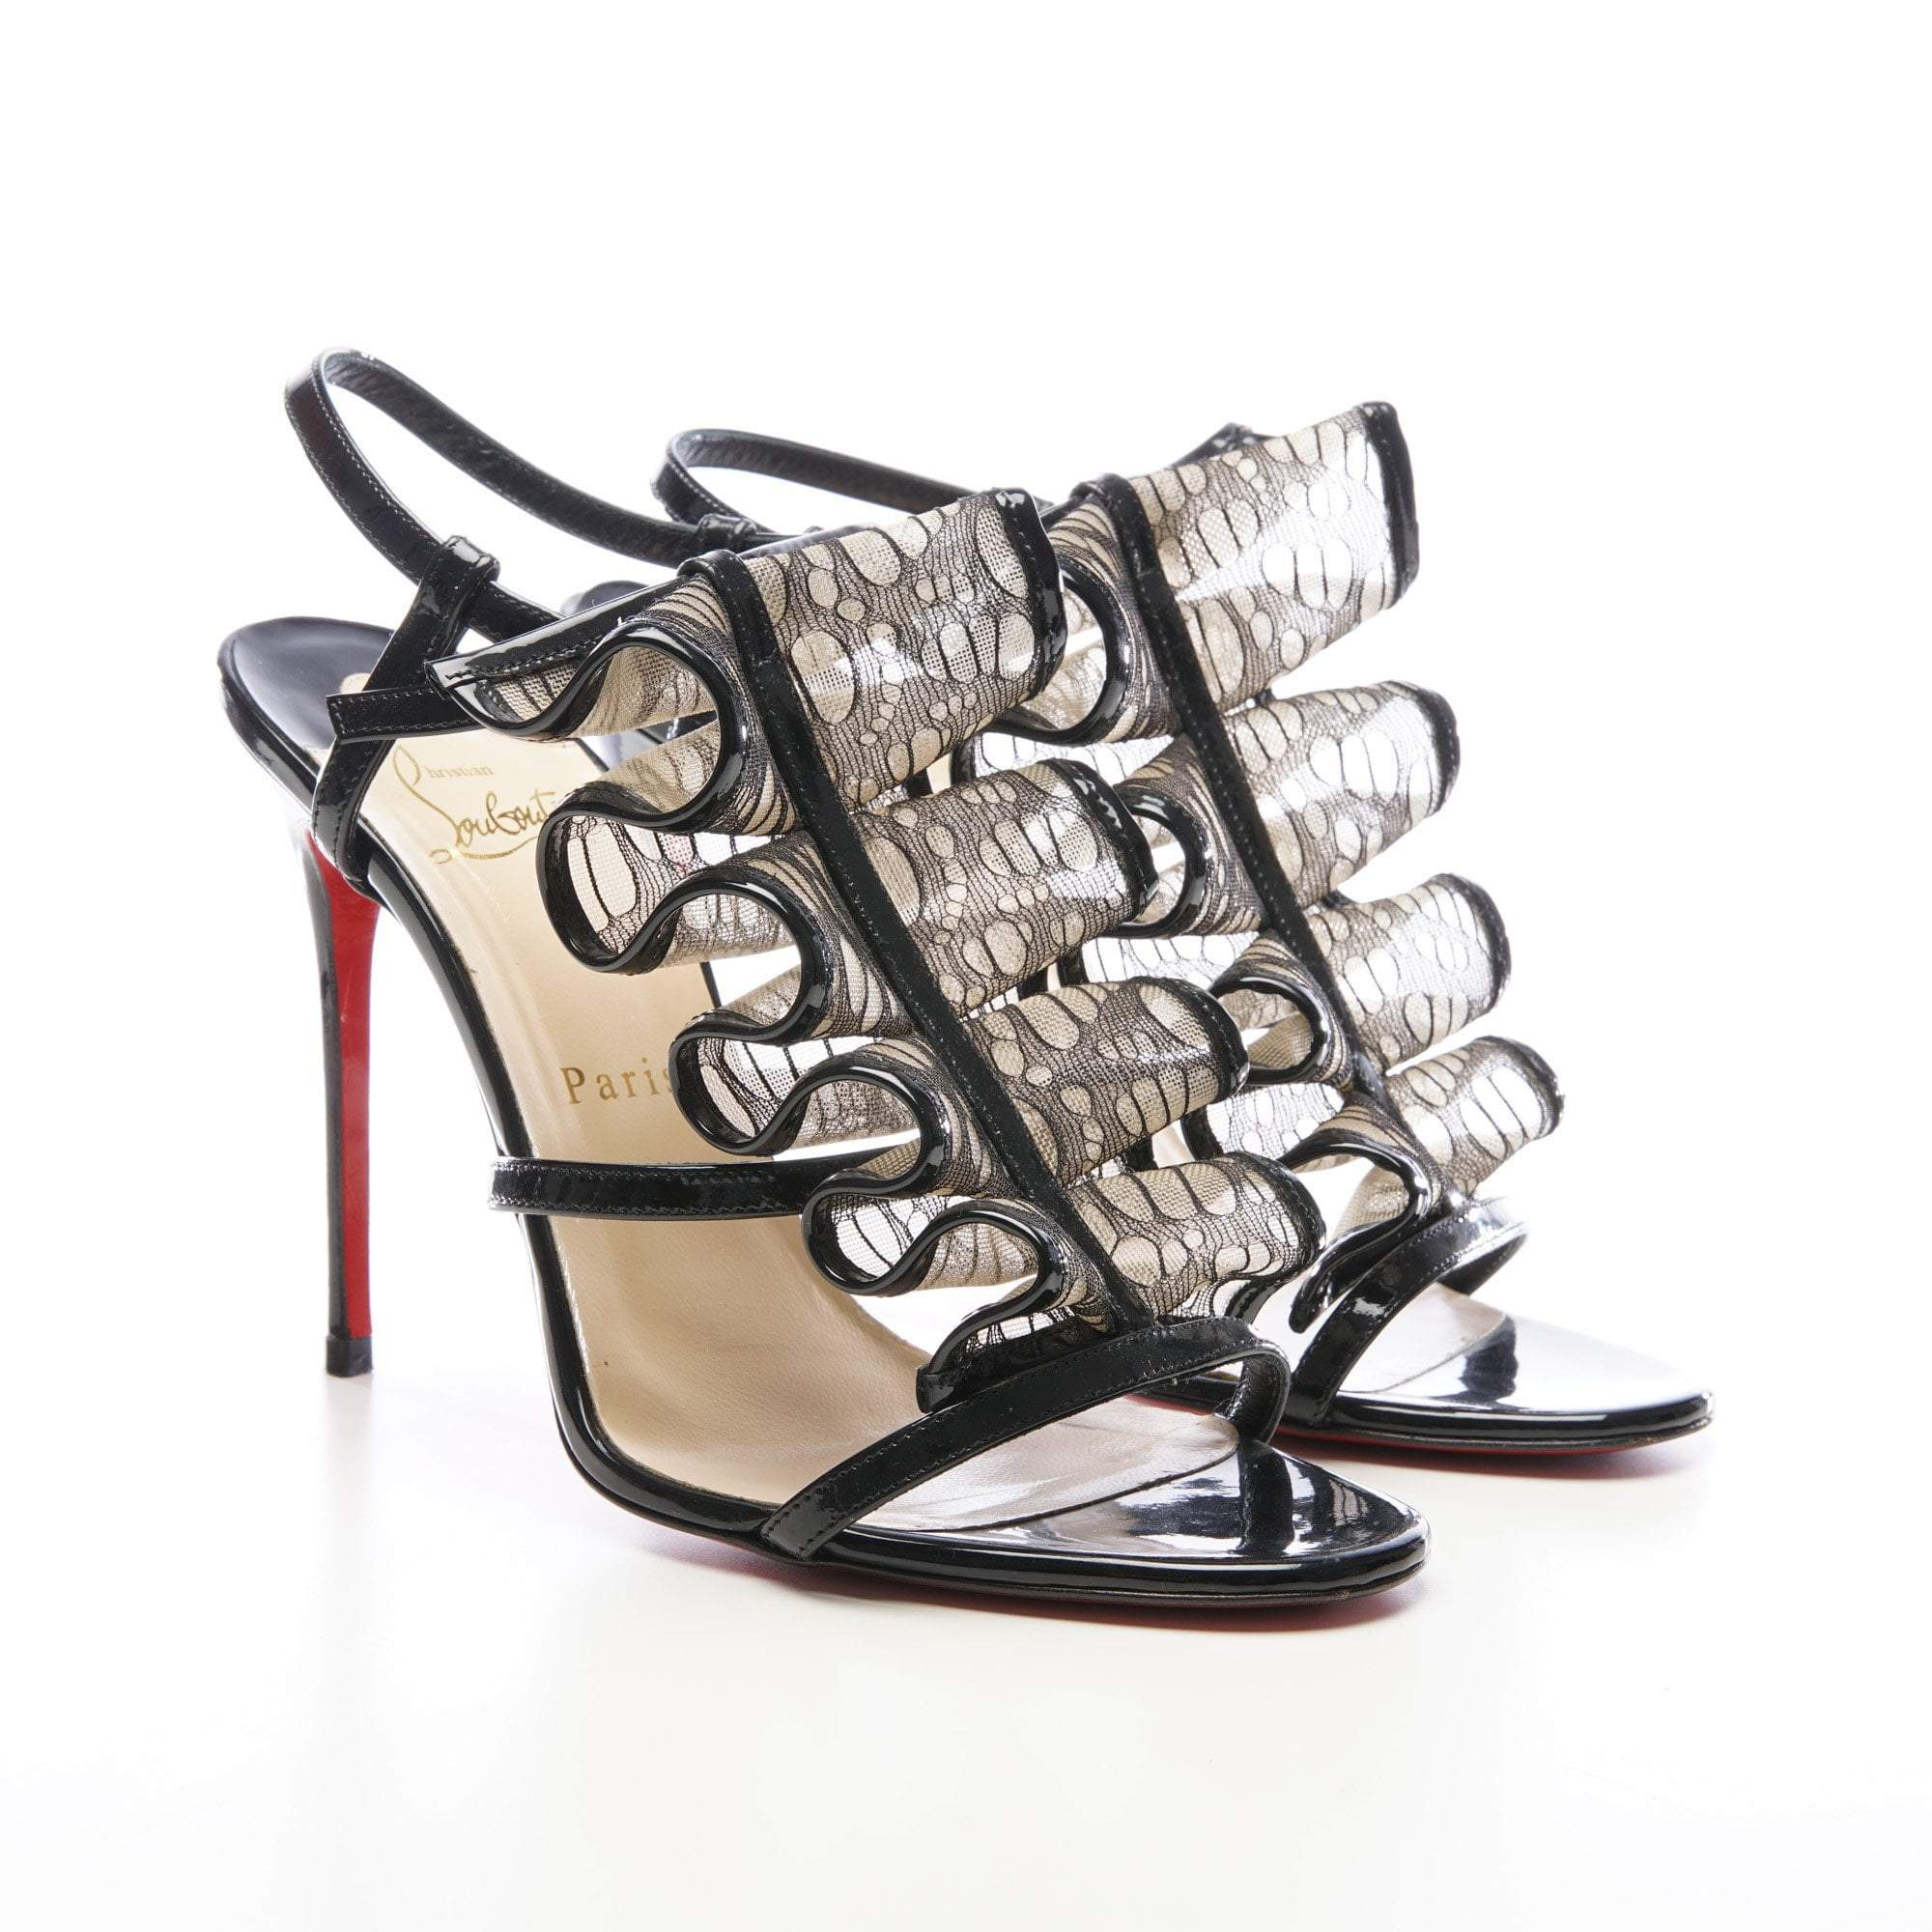 Christian Louboutin Black Fortitia 100 Patent Leather Sandals